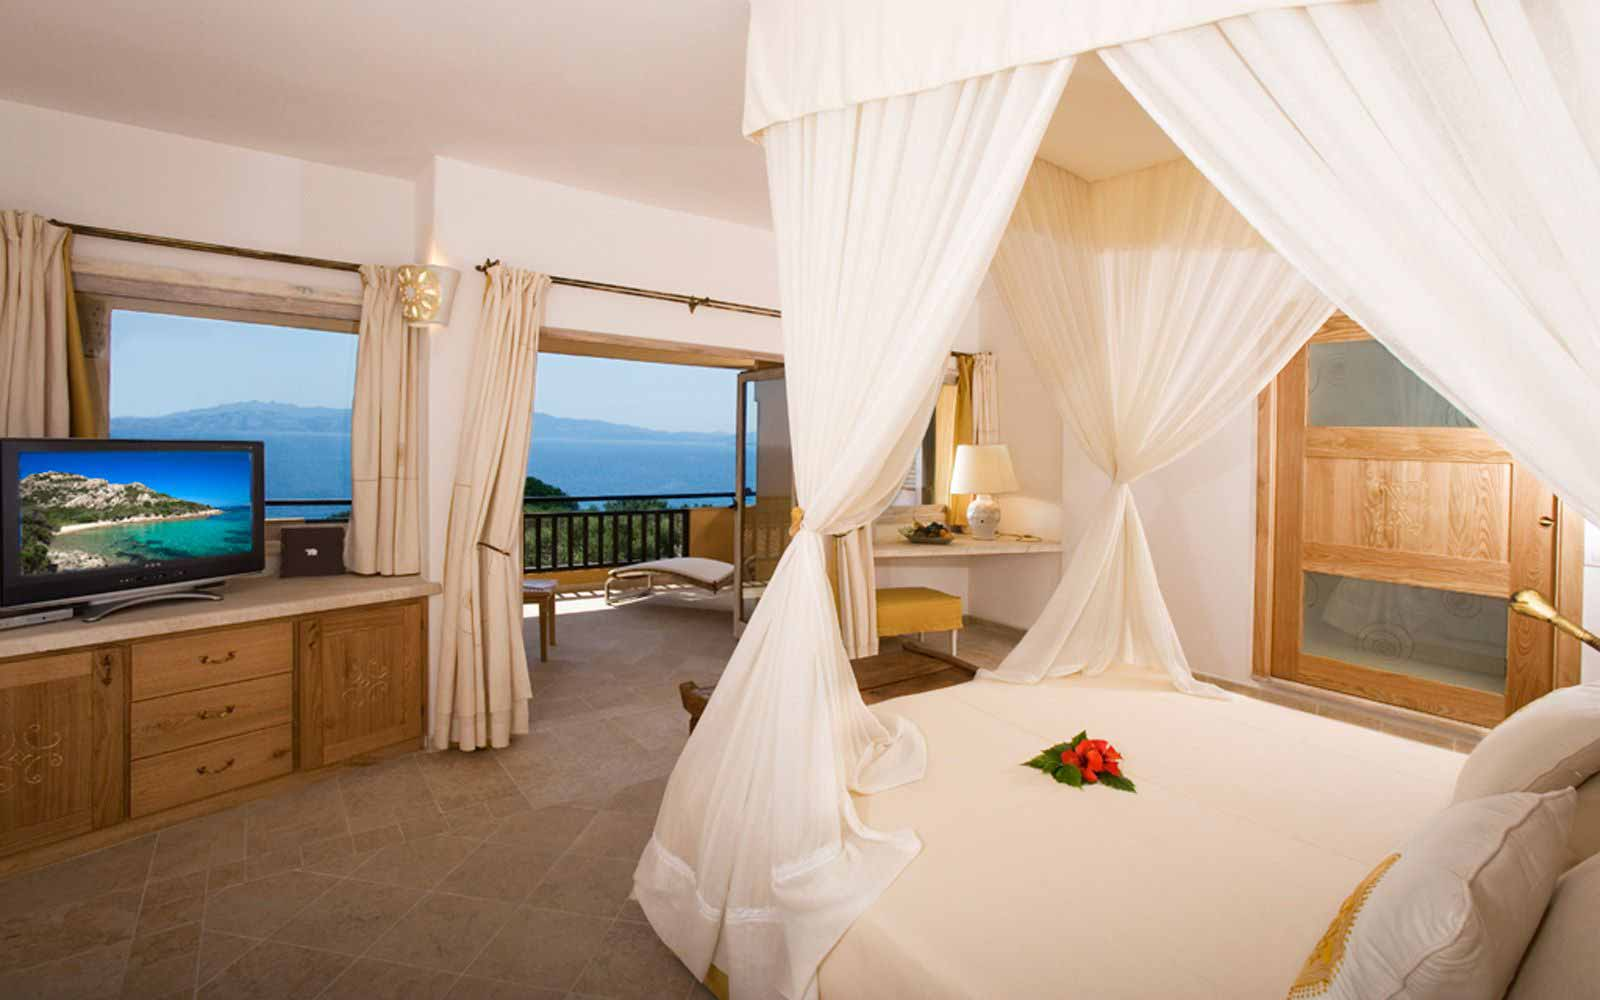 President room at Hotel Capo d'Orso